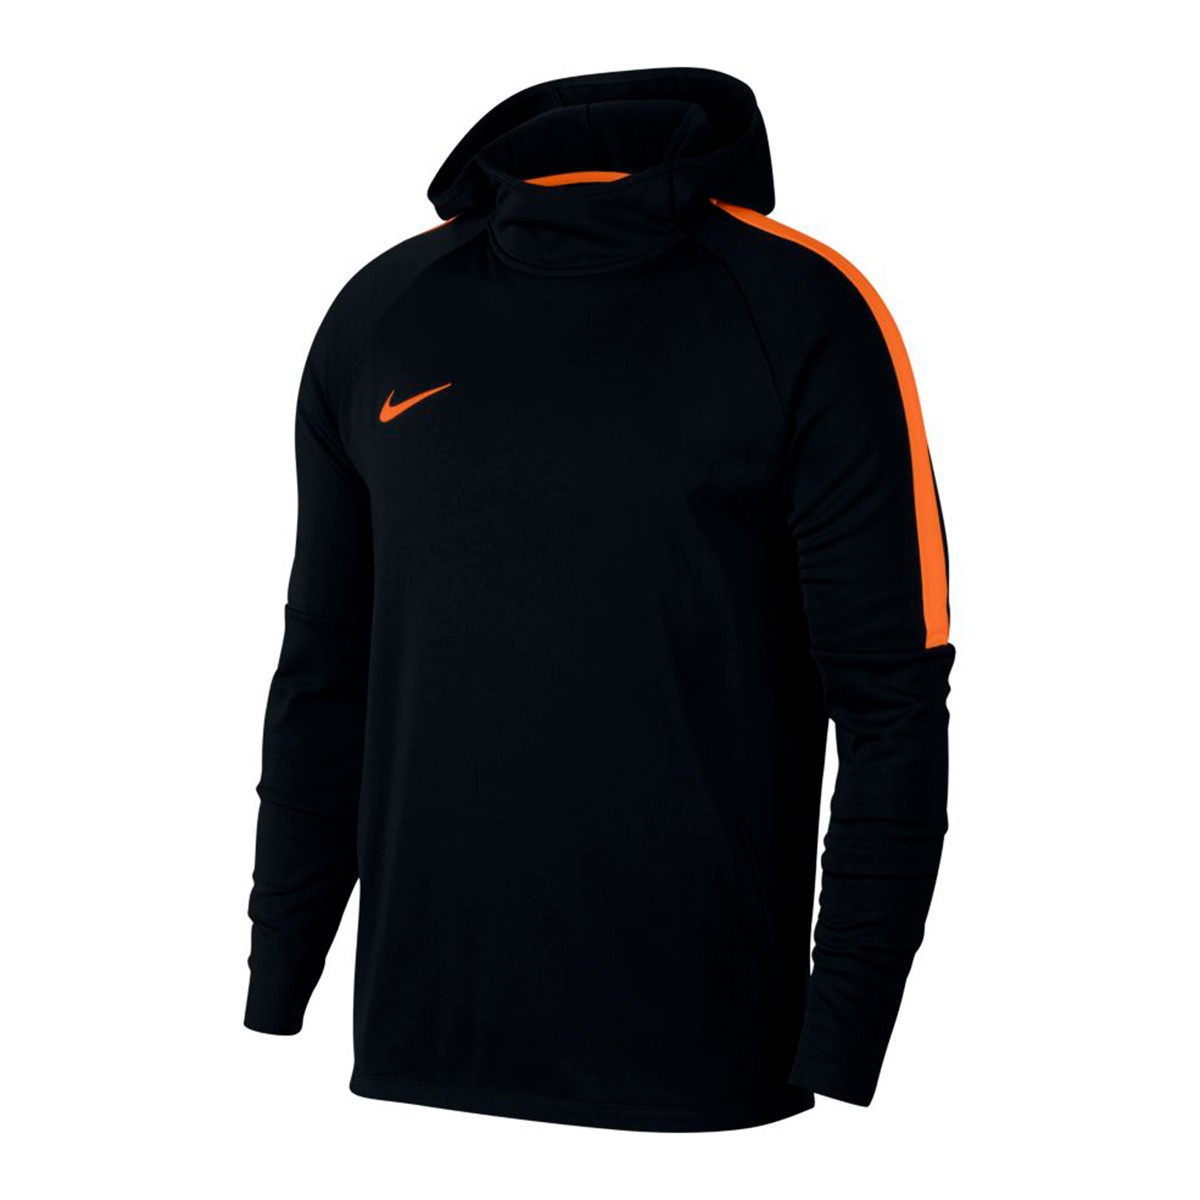 Sweatshirt Nike Dry Academy Hoodie Black-Cone - Football store ... 076def783be74